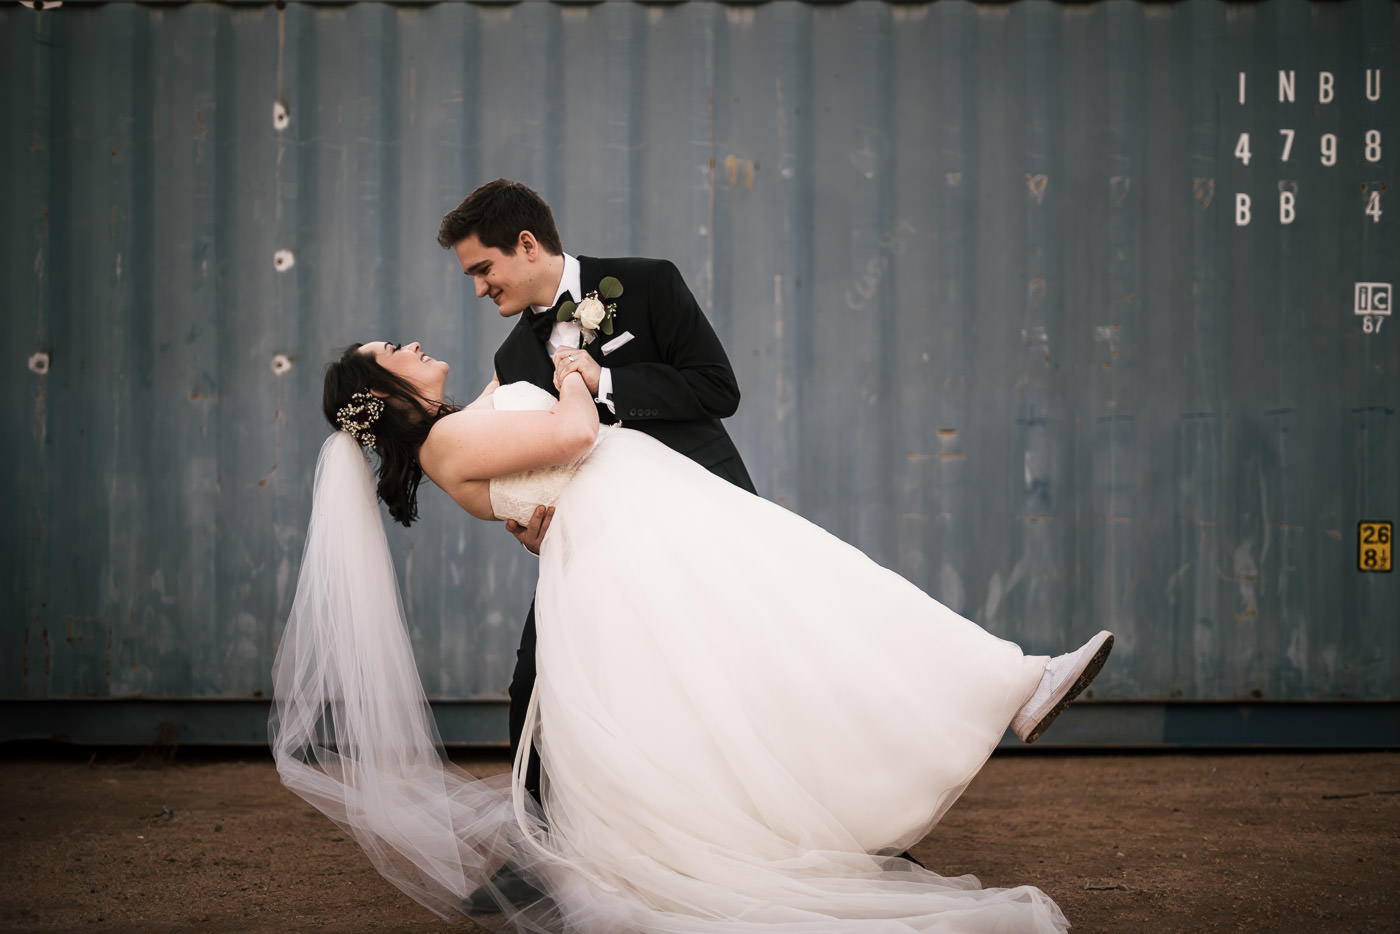 Groom dips his bride after a slow dance at their country wedding.